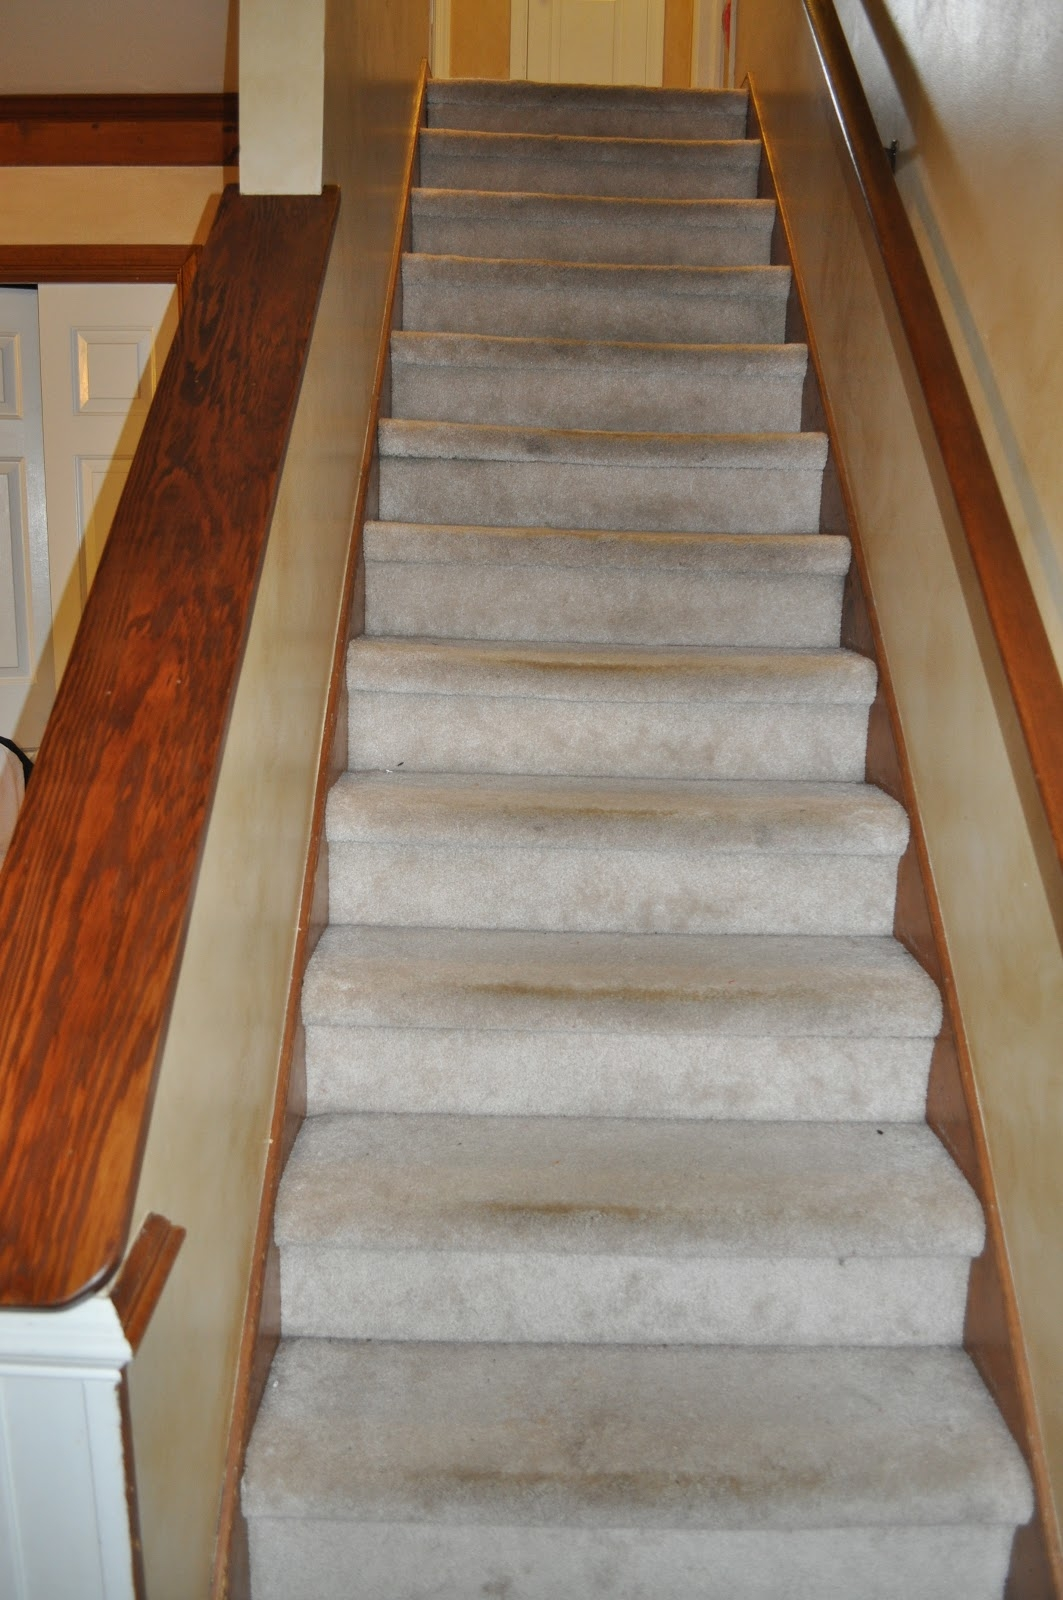 Carpet On Stairs Slippery Make Your Own Carpet Stair Treads In Bullnose Stair Tread Rugs (Image 5 of 15)